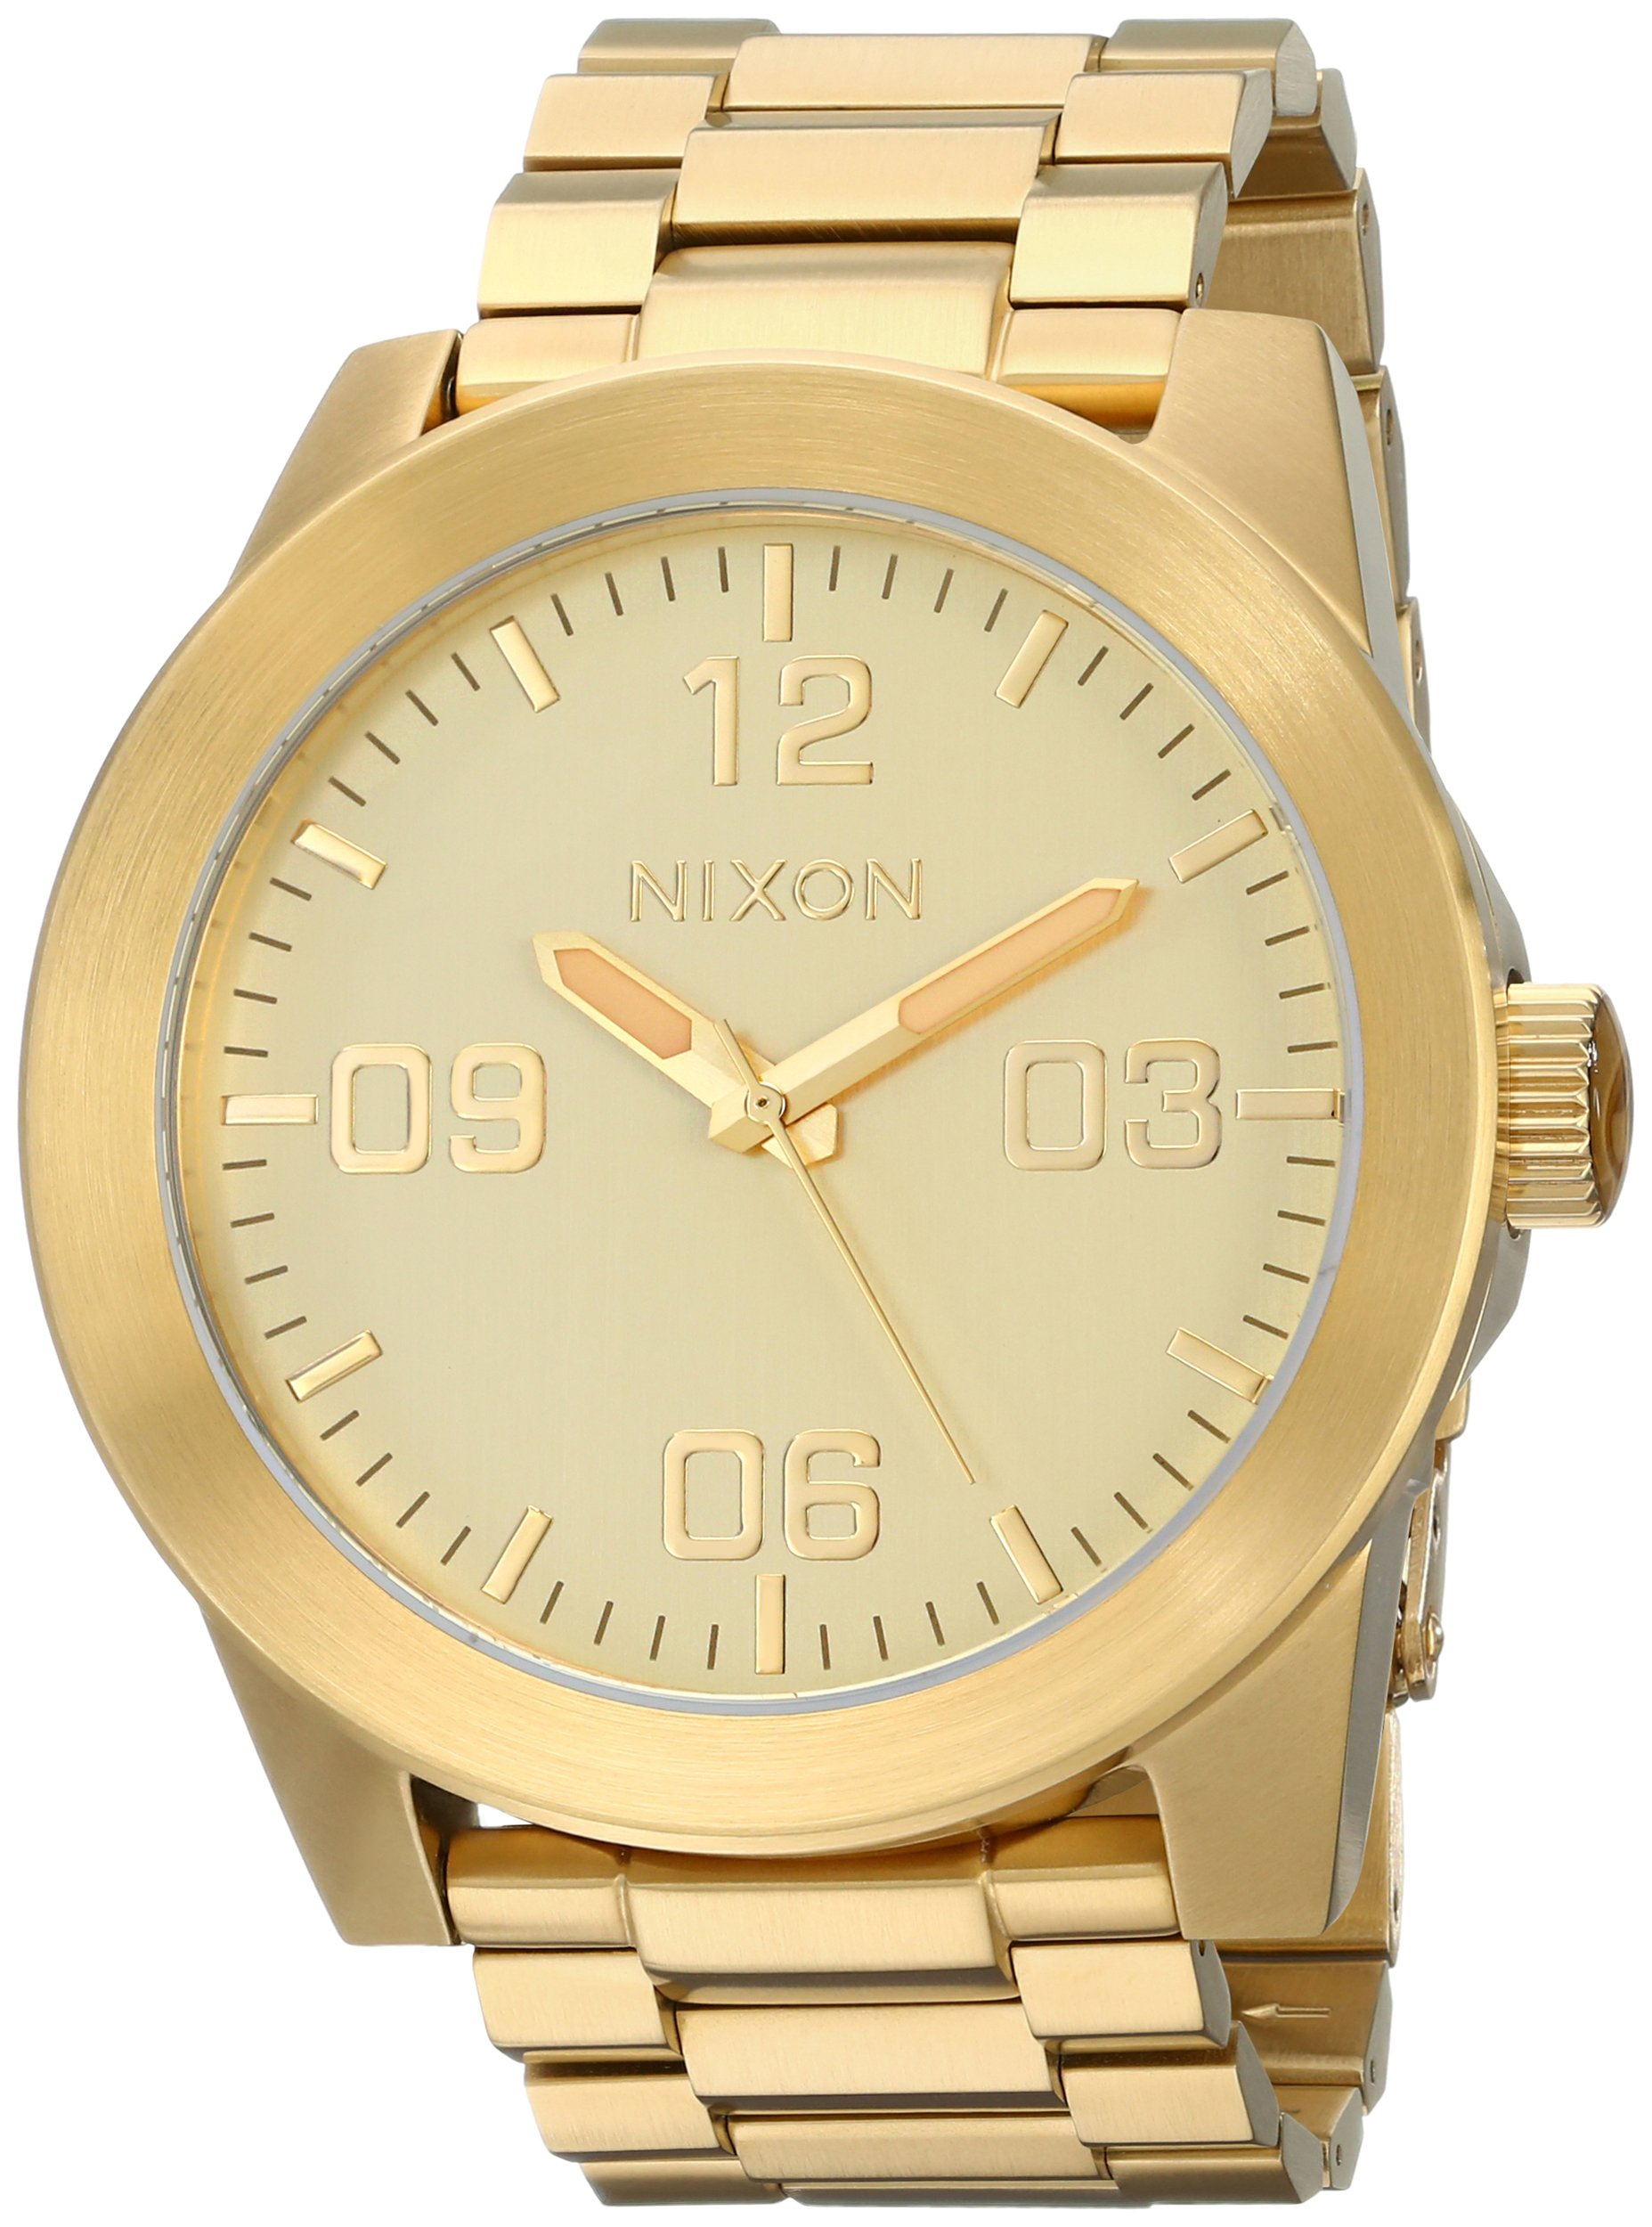 Nixon Men's Corporal Stainless Steel Watch One Size Gold Tone